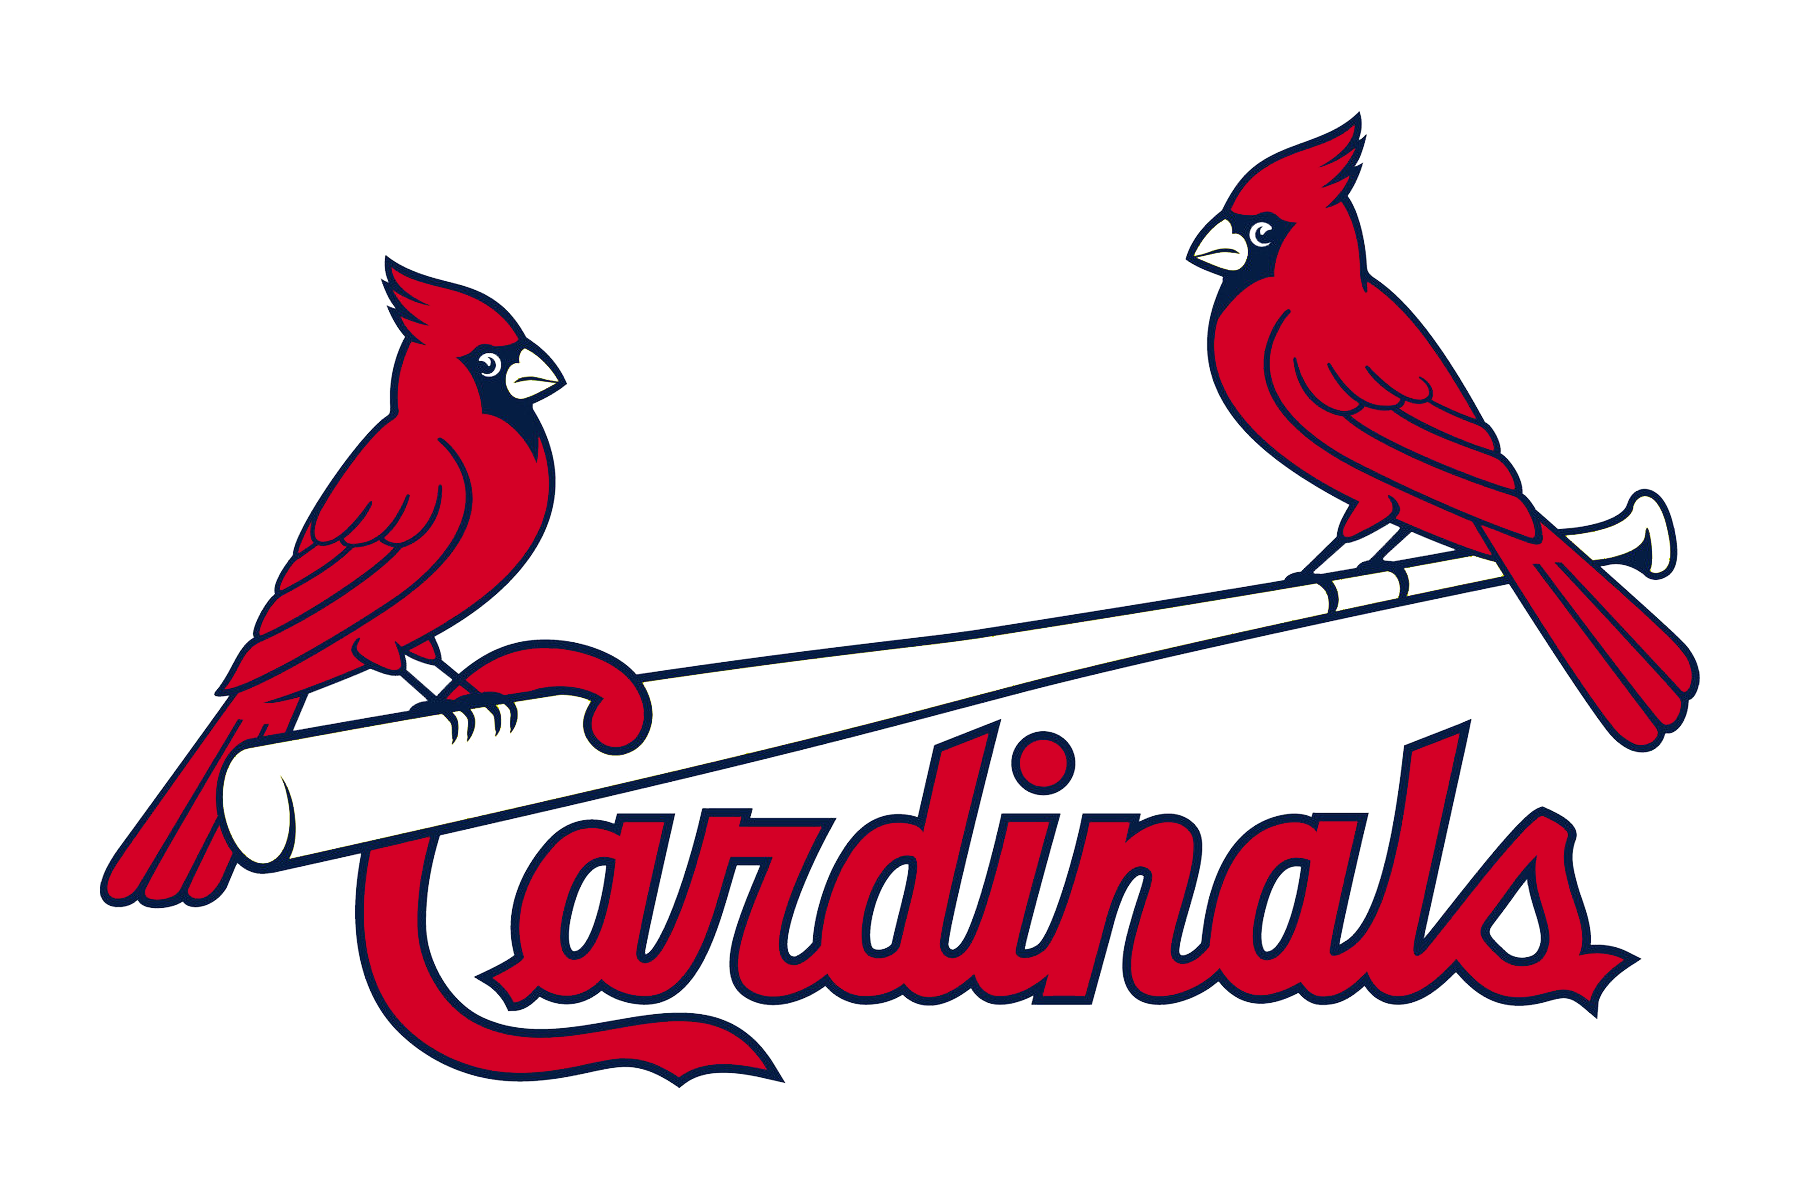 St Louis Cardinals Logo Png Transparent Svg Vector Freebie Supply Stl Cardinals Baseball St Cardinals Cardinals